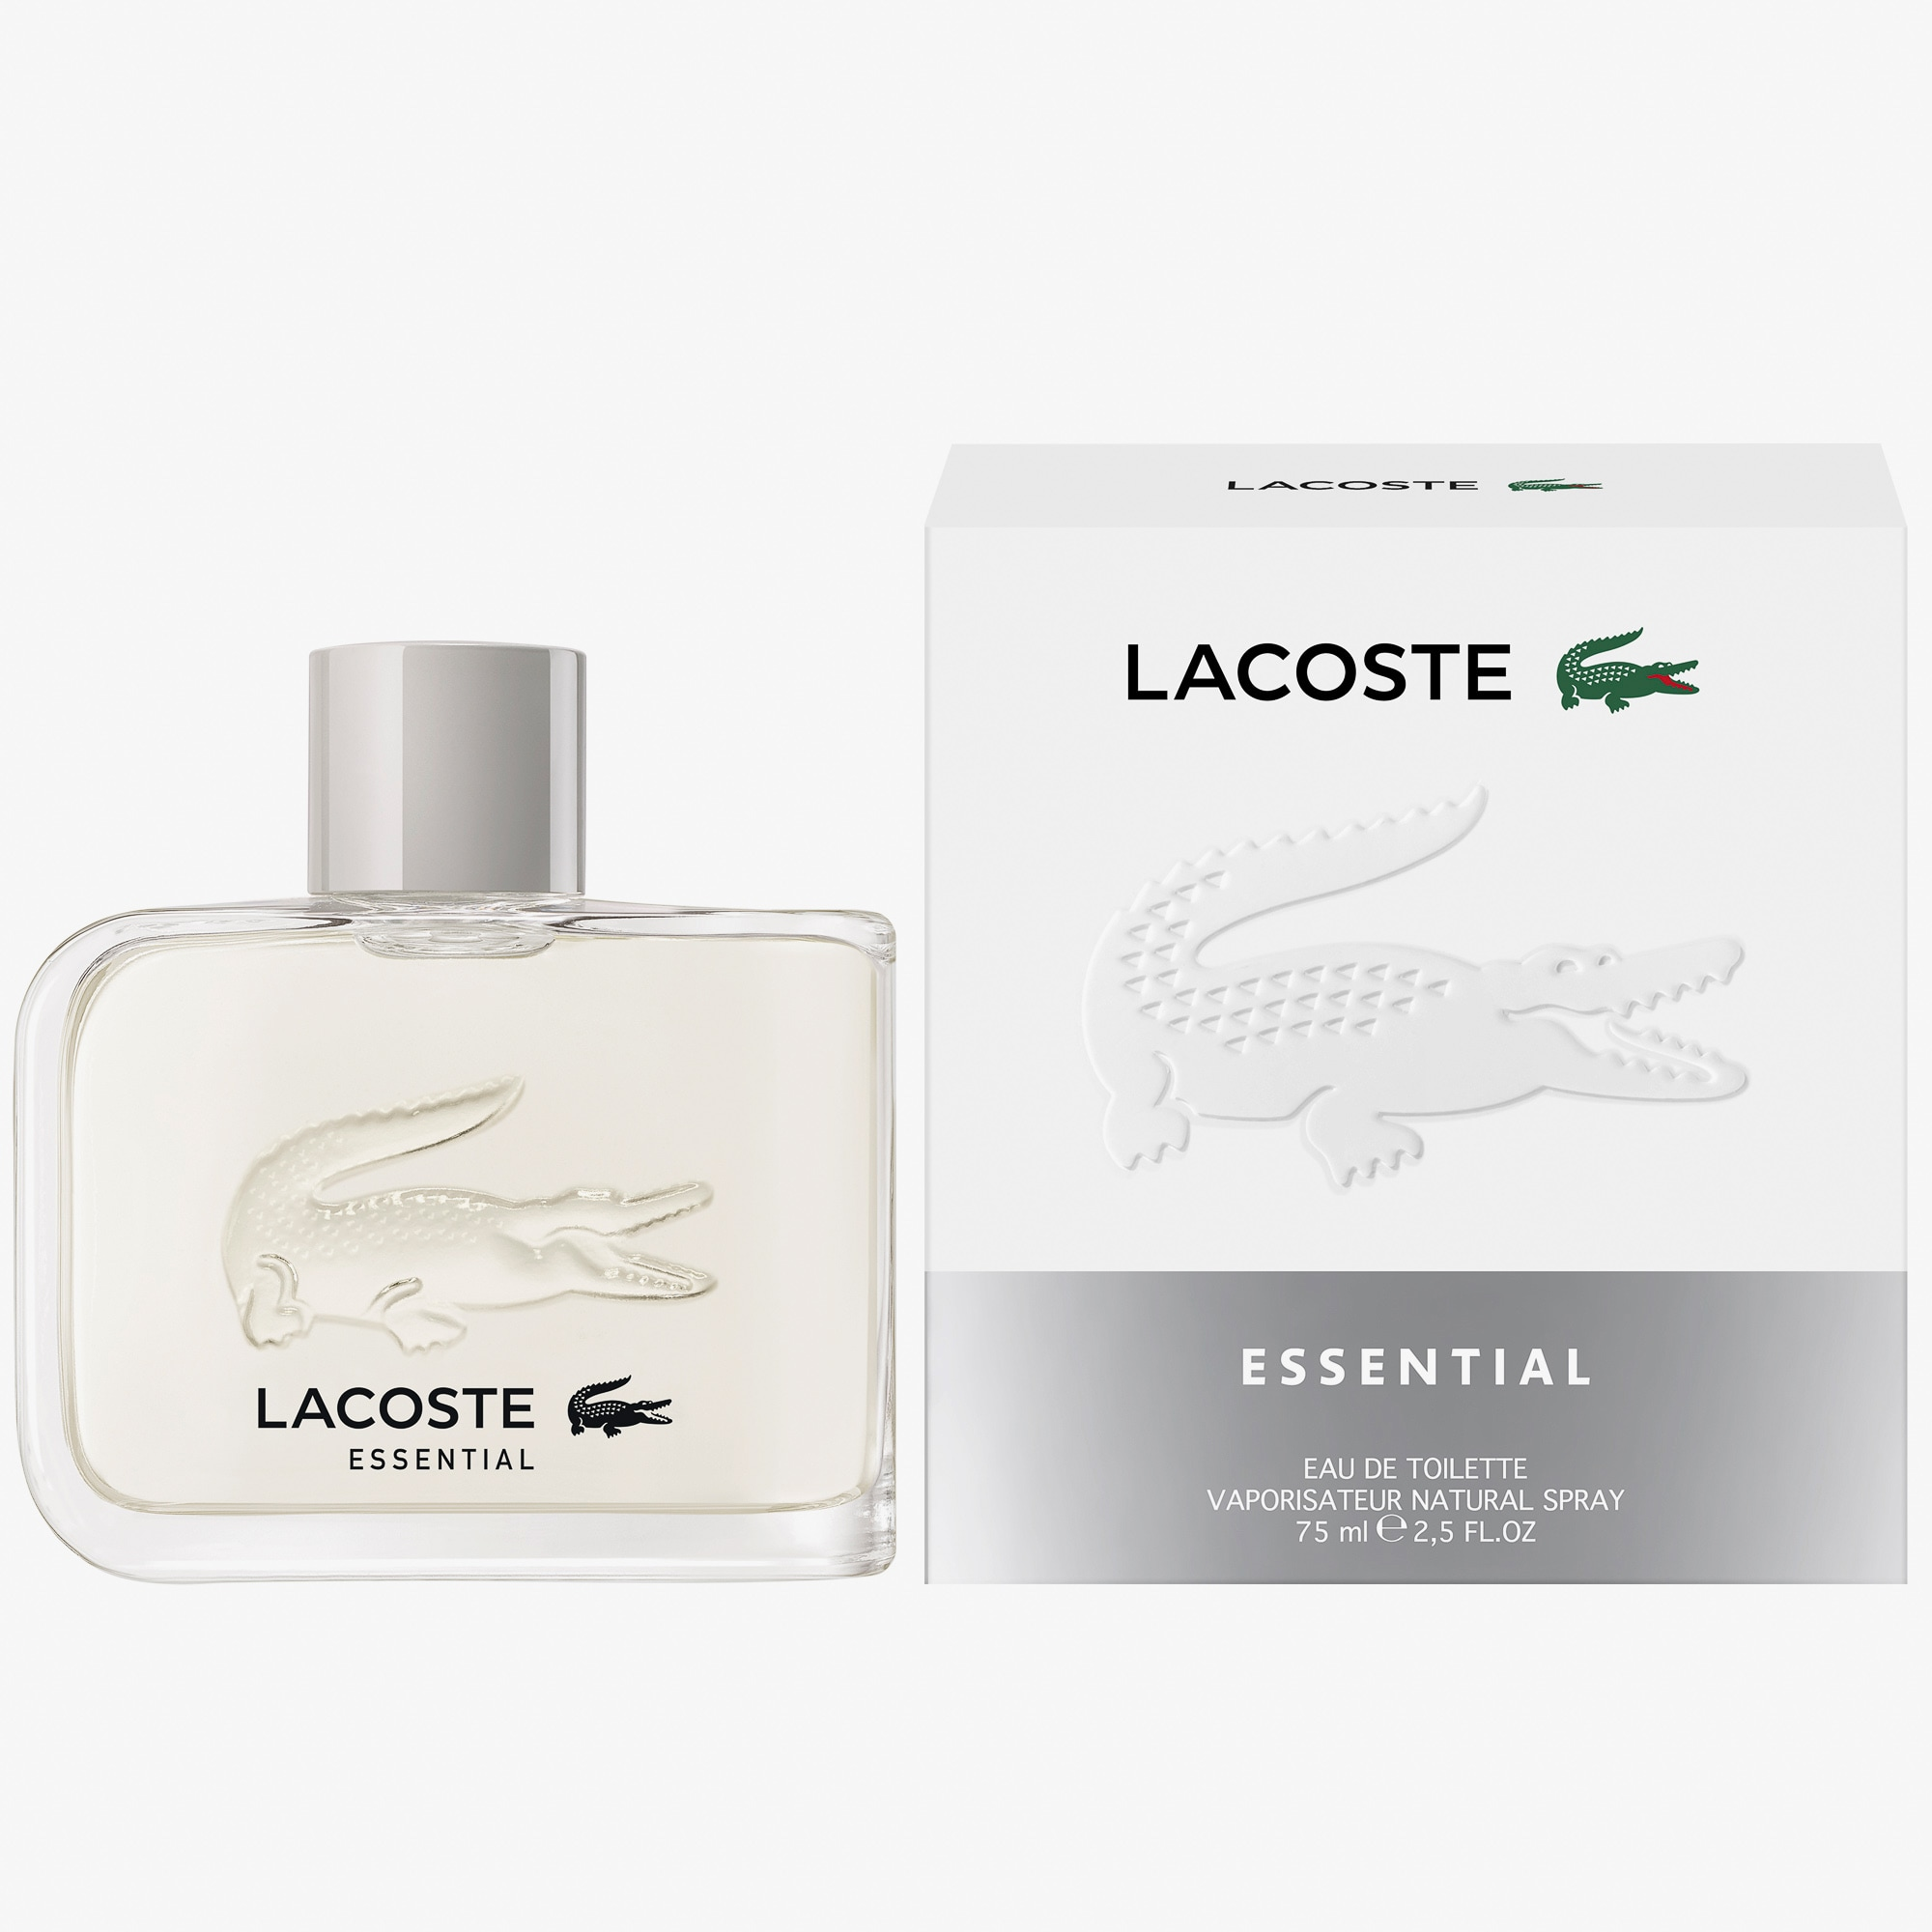 Lacoste Essential Eau de Toilette 75ml